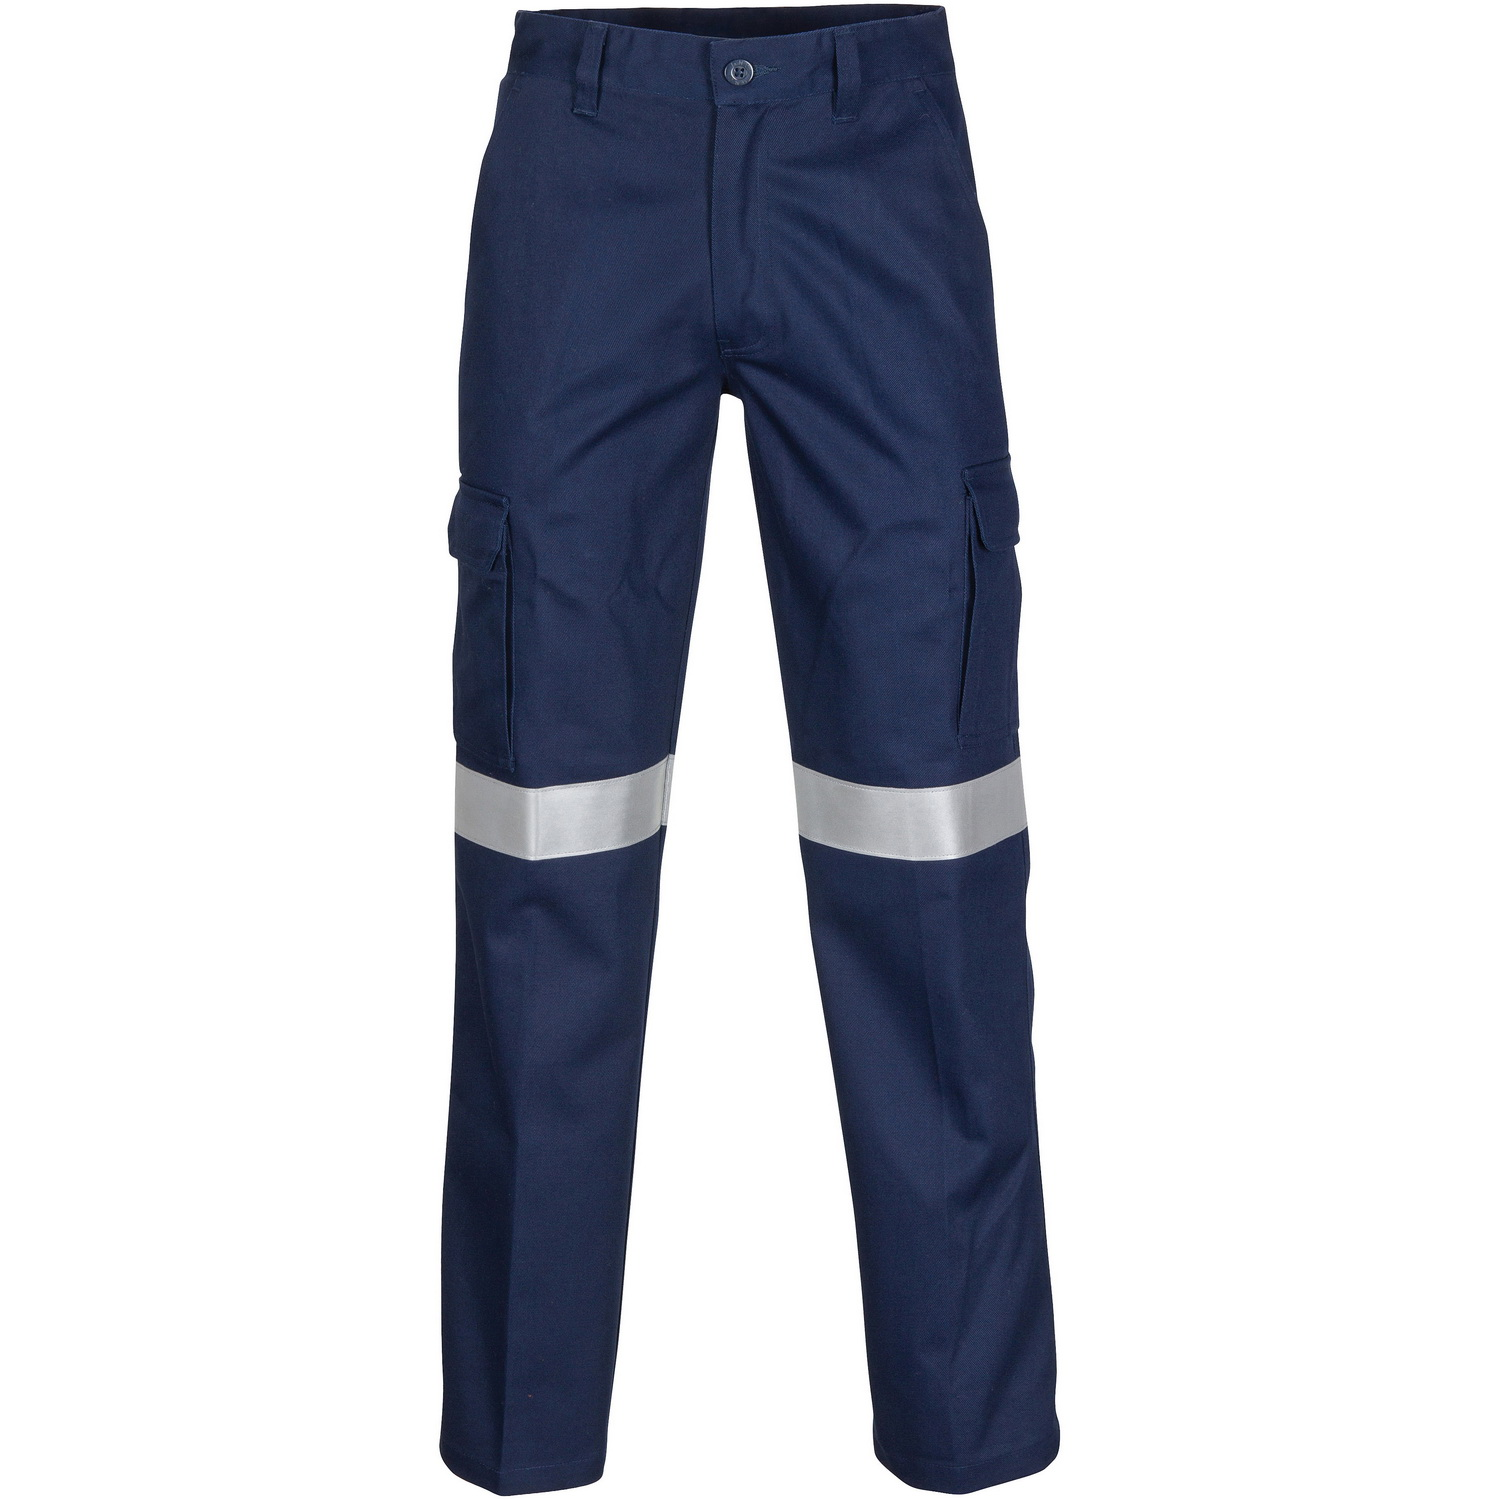 DNC 3419-Flame Resistan Pants with 3M tape